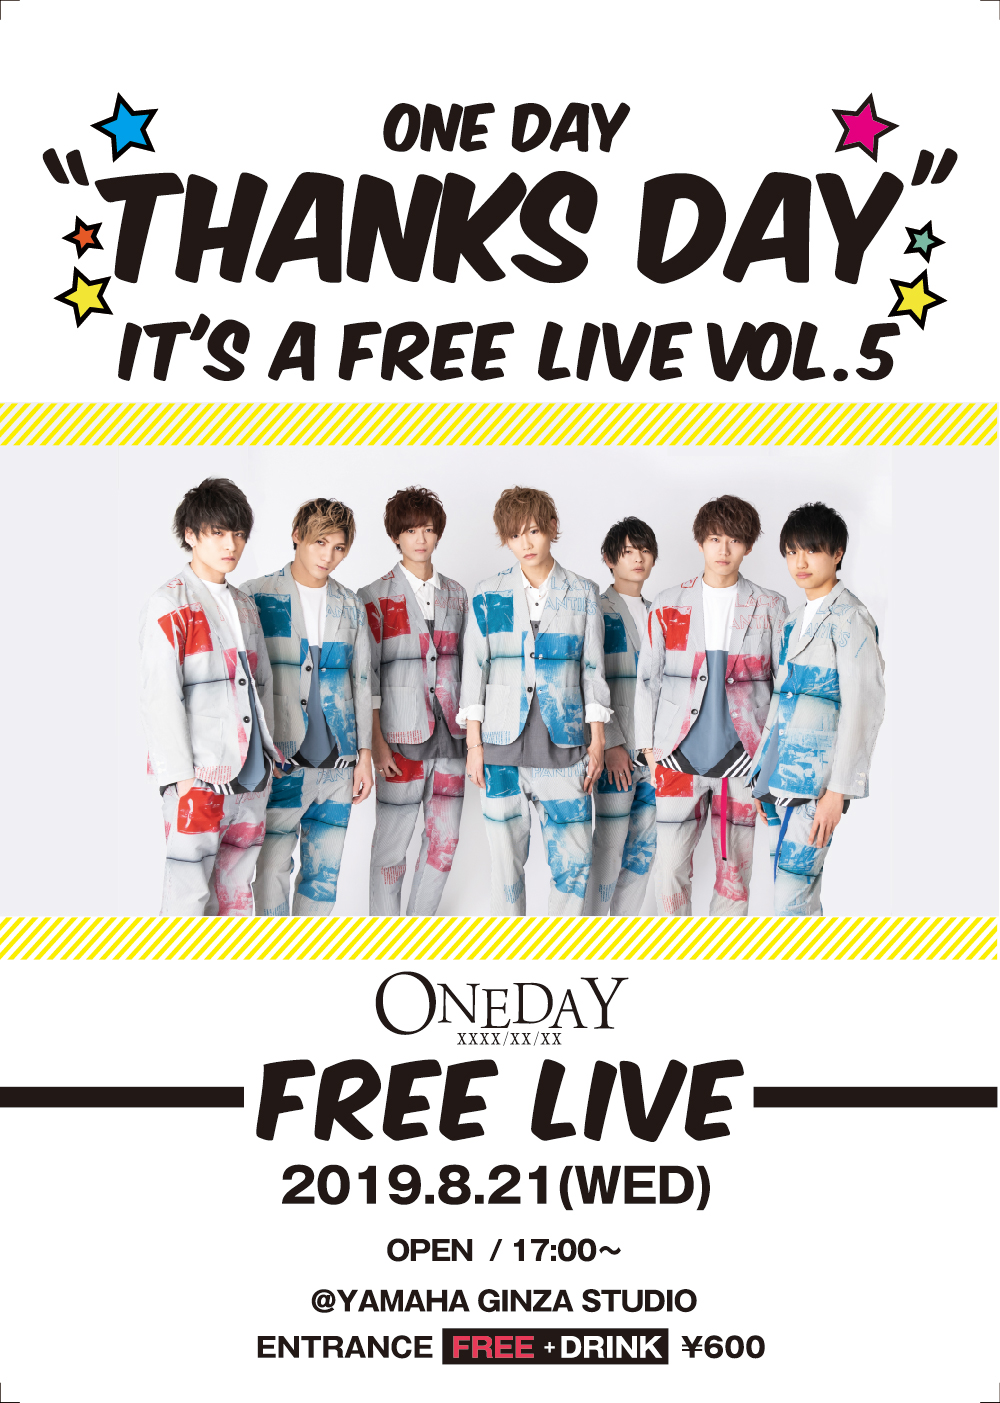 "〜特典会は浴衣でお出迎え〜ONE DAY ""THANKS DAY"" 〜 It's a FREE LIVE vol.5〜"